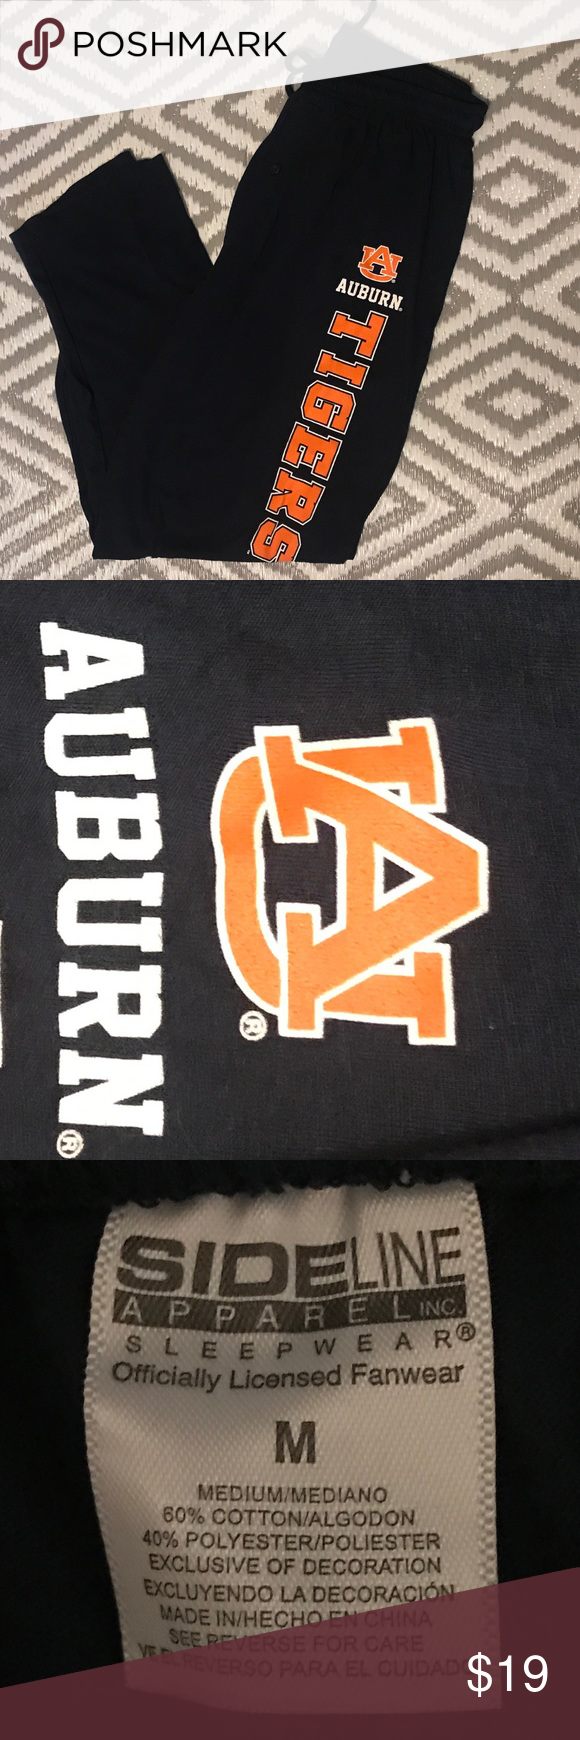 Auburn pajama bottoms for men